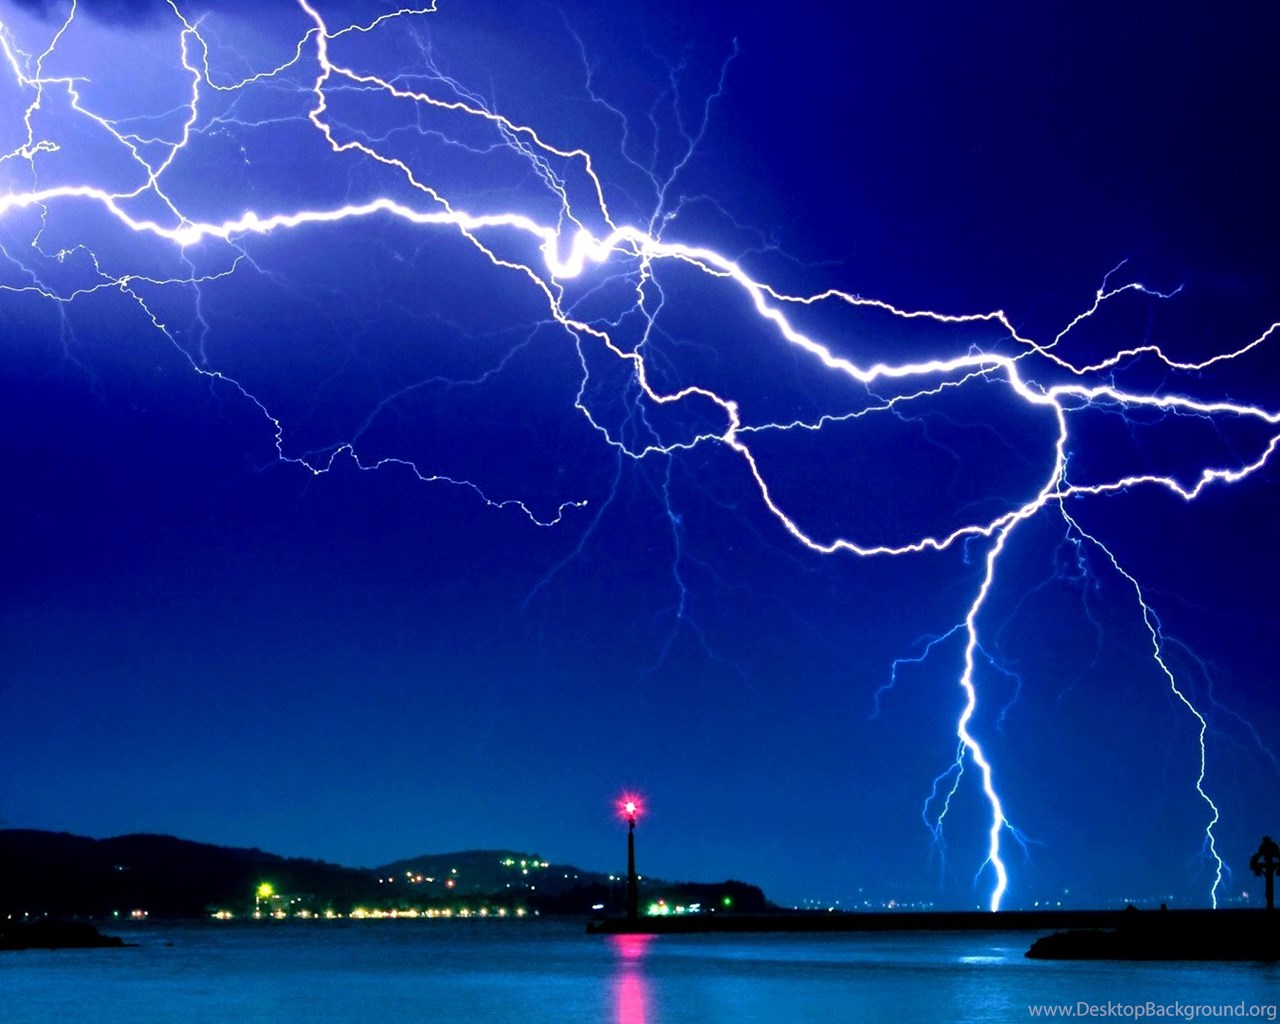 Download dramatic lightning hd live wallpapers free - Free download hd wallpapers for pc 1280x1024 ...